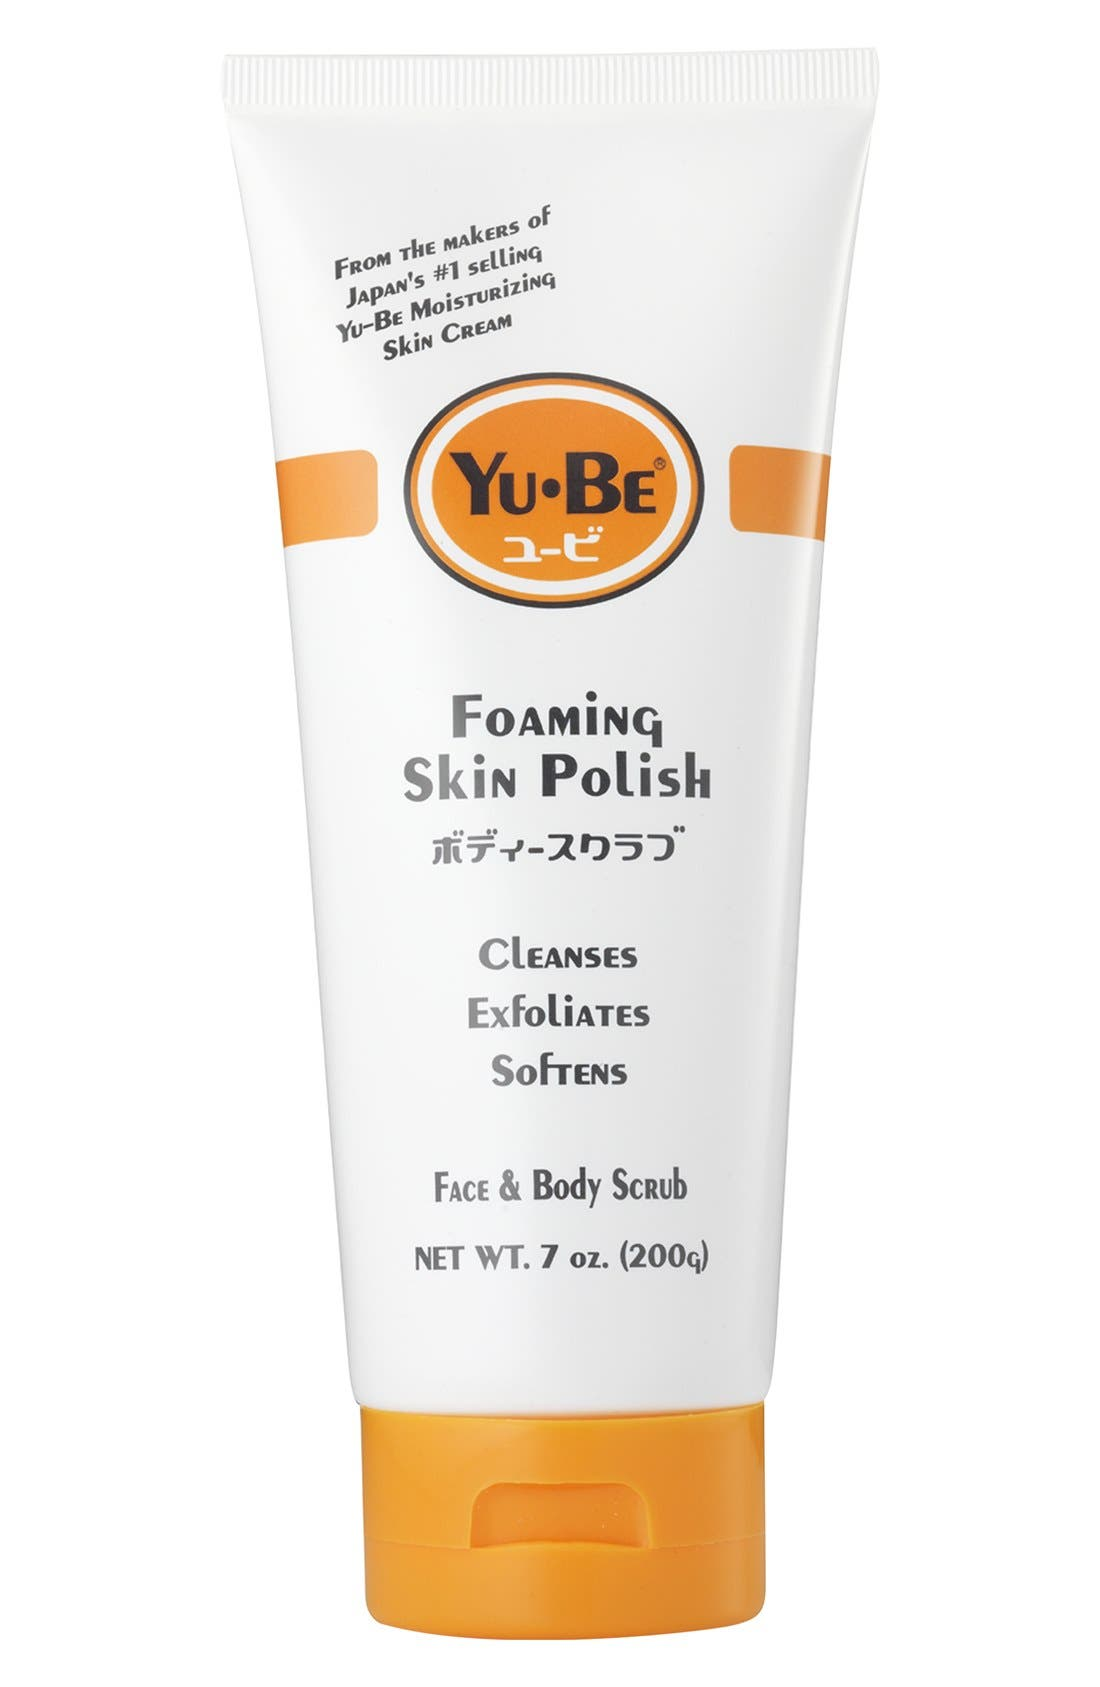 Yu-Be® Foaming Skin Polish